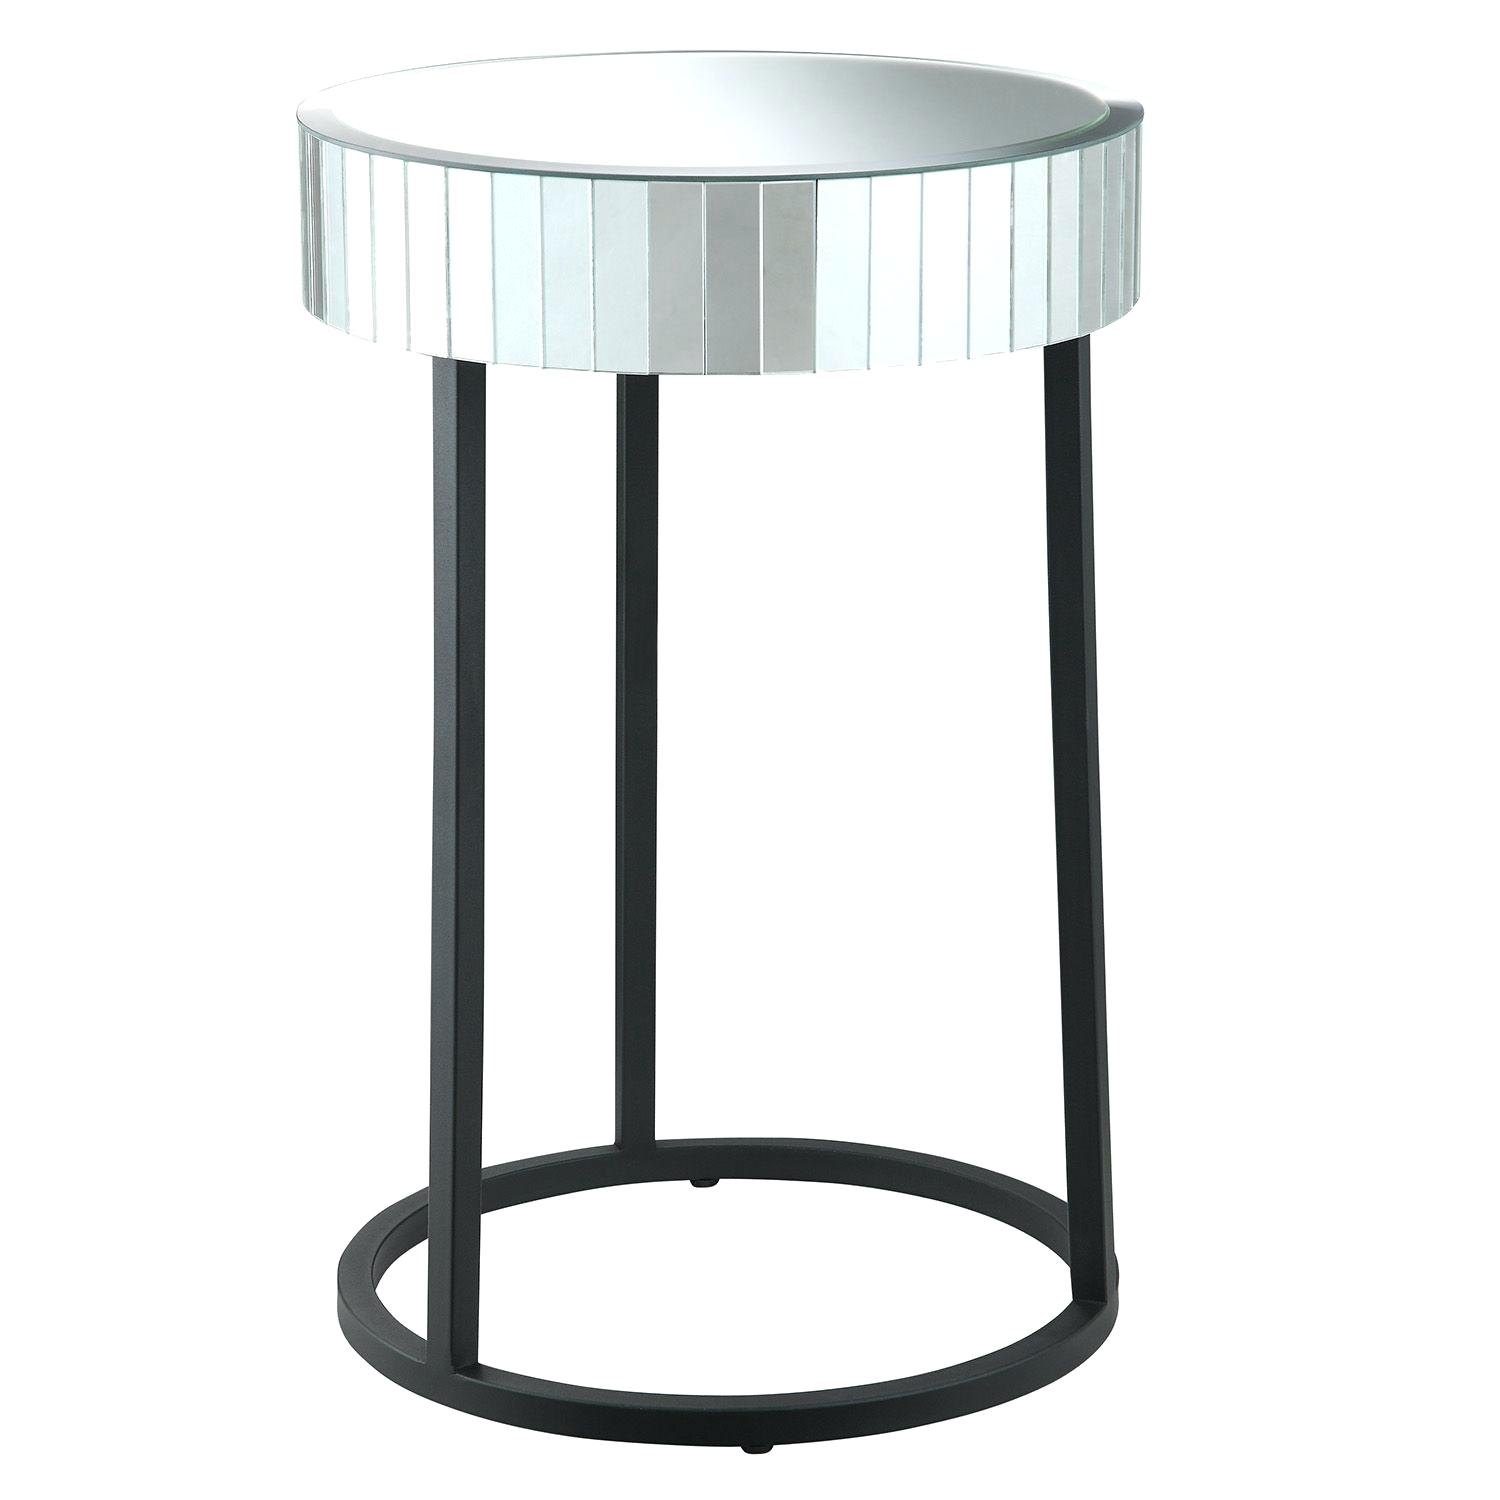 round mirror accent table pier tables mosaic lavorochogan info outdoor wicker coffee with glass top counter high kitchen metal door threshold tall end nesting dining and chairs